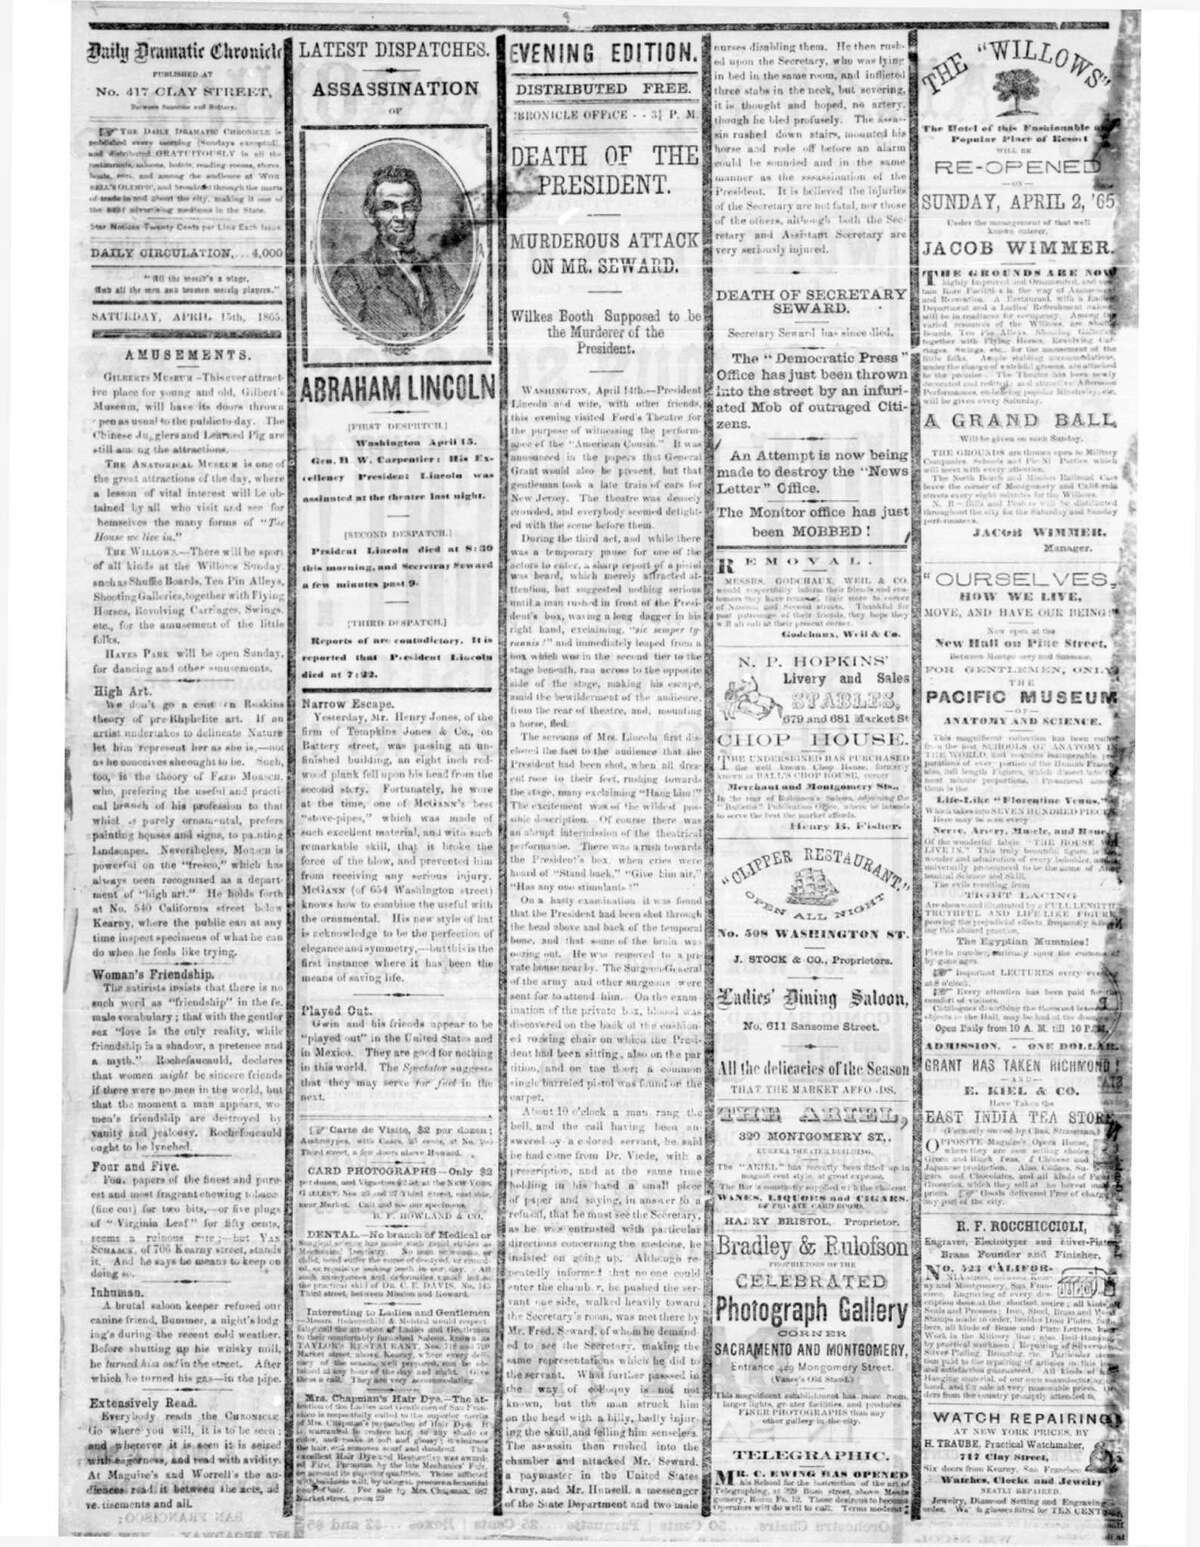 Chronicle 1865 front page when President Abraham Lincoln was assassinated.